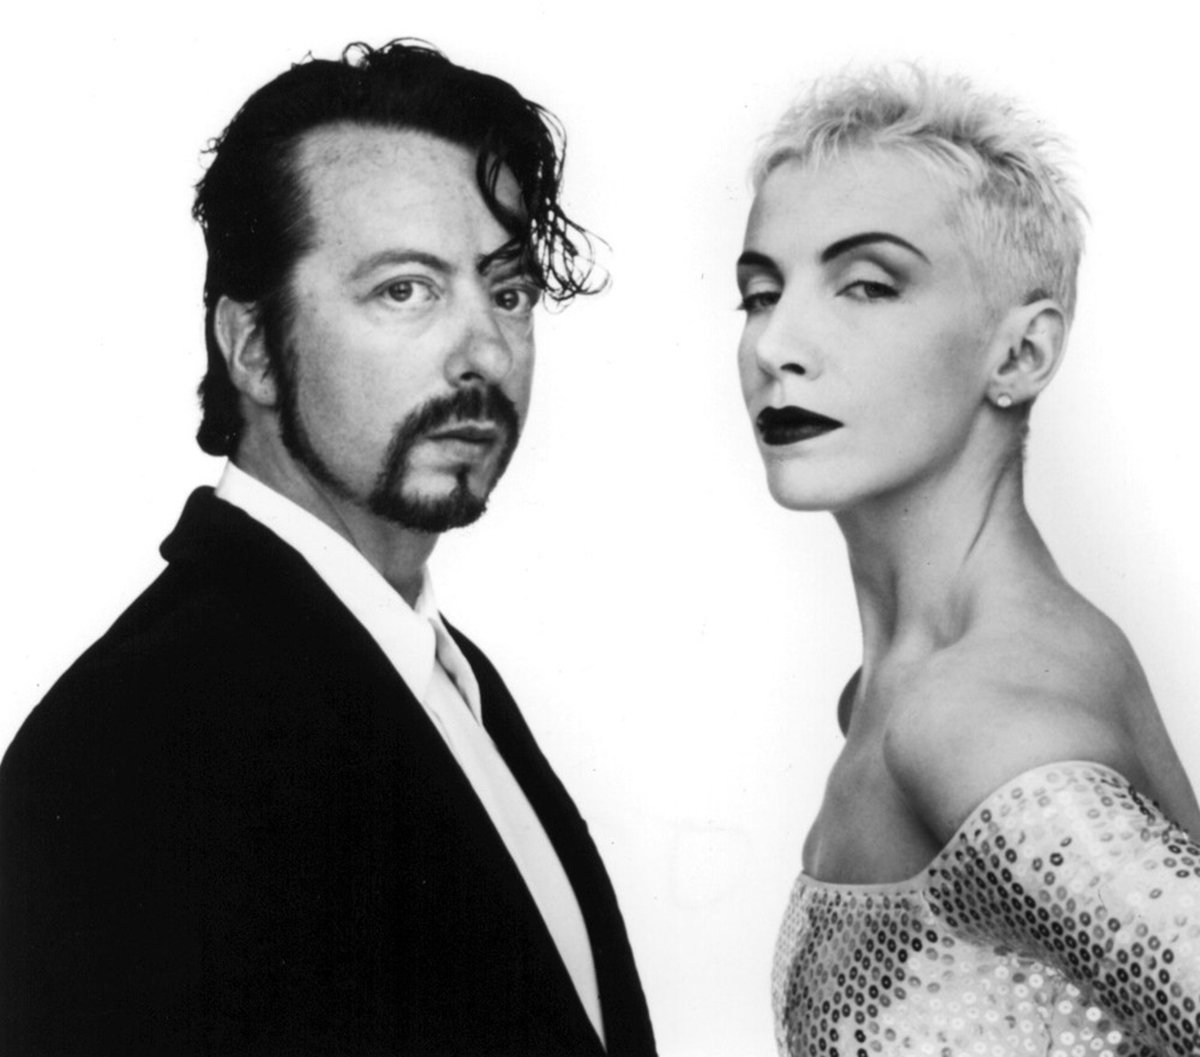 Eurythmics in recent years